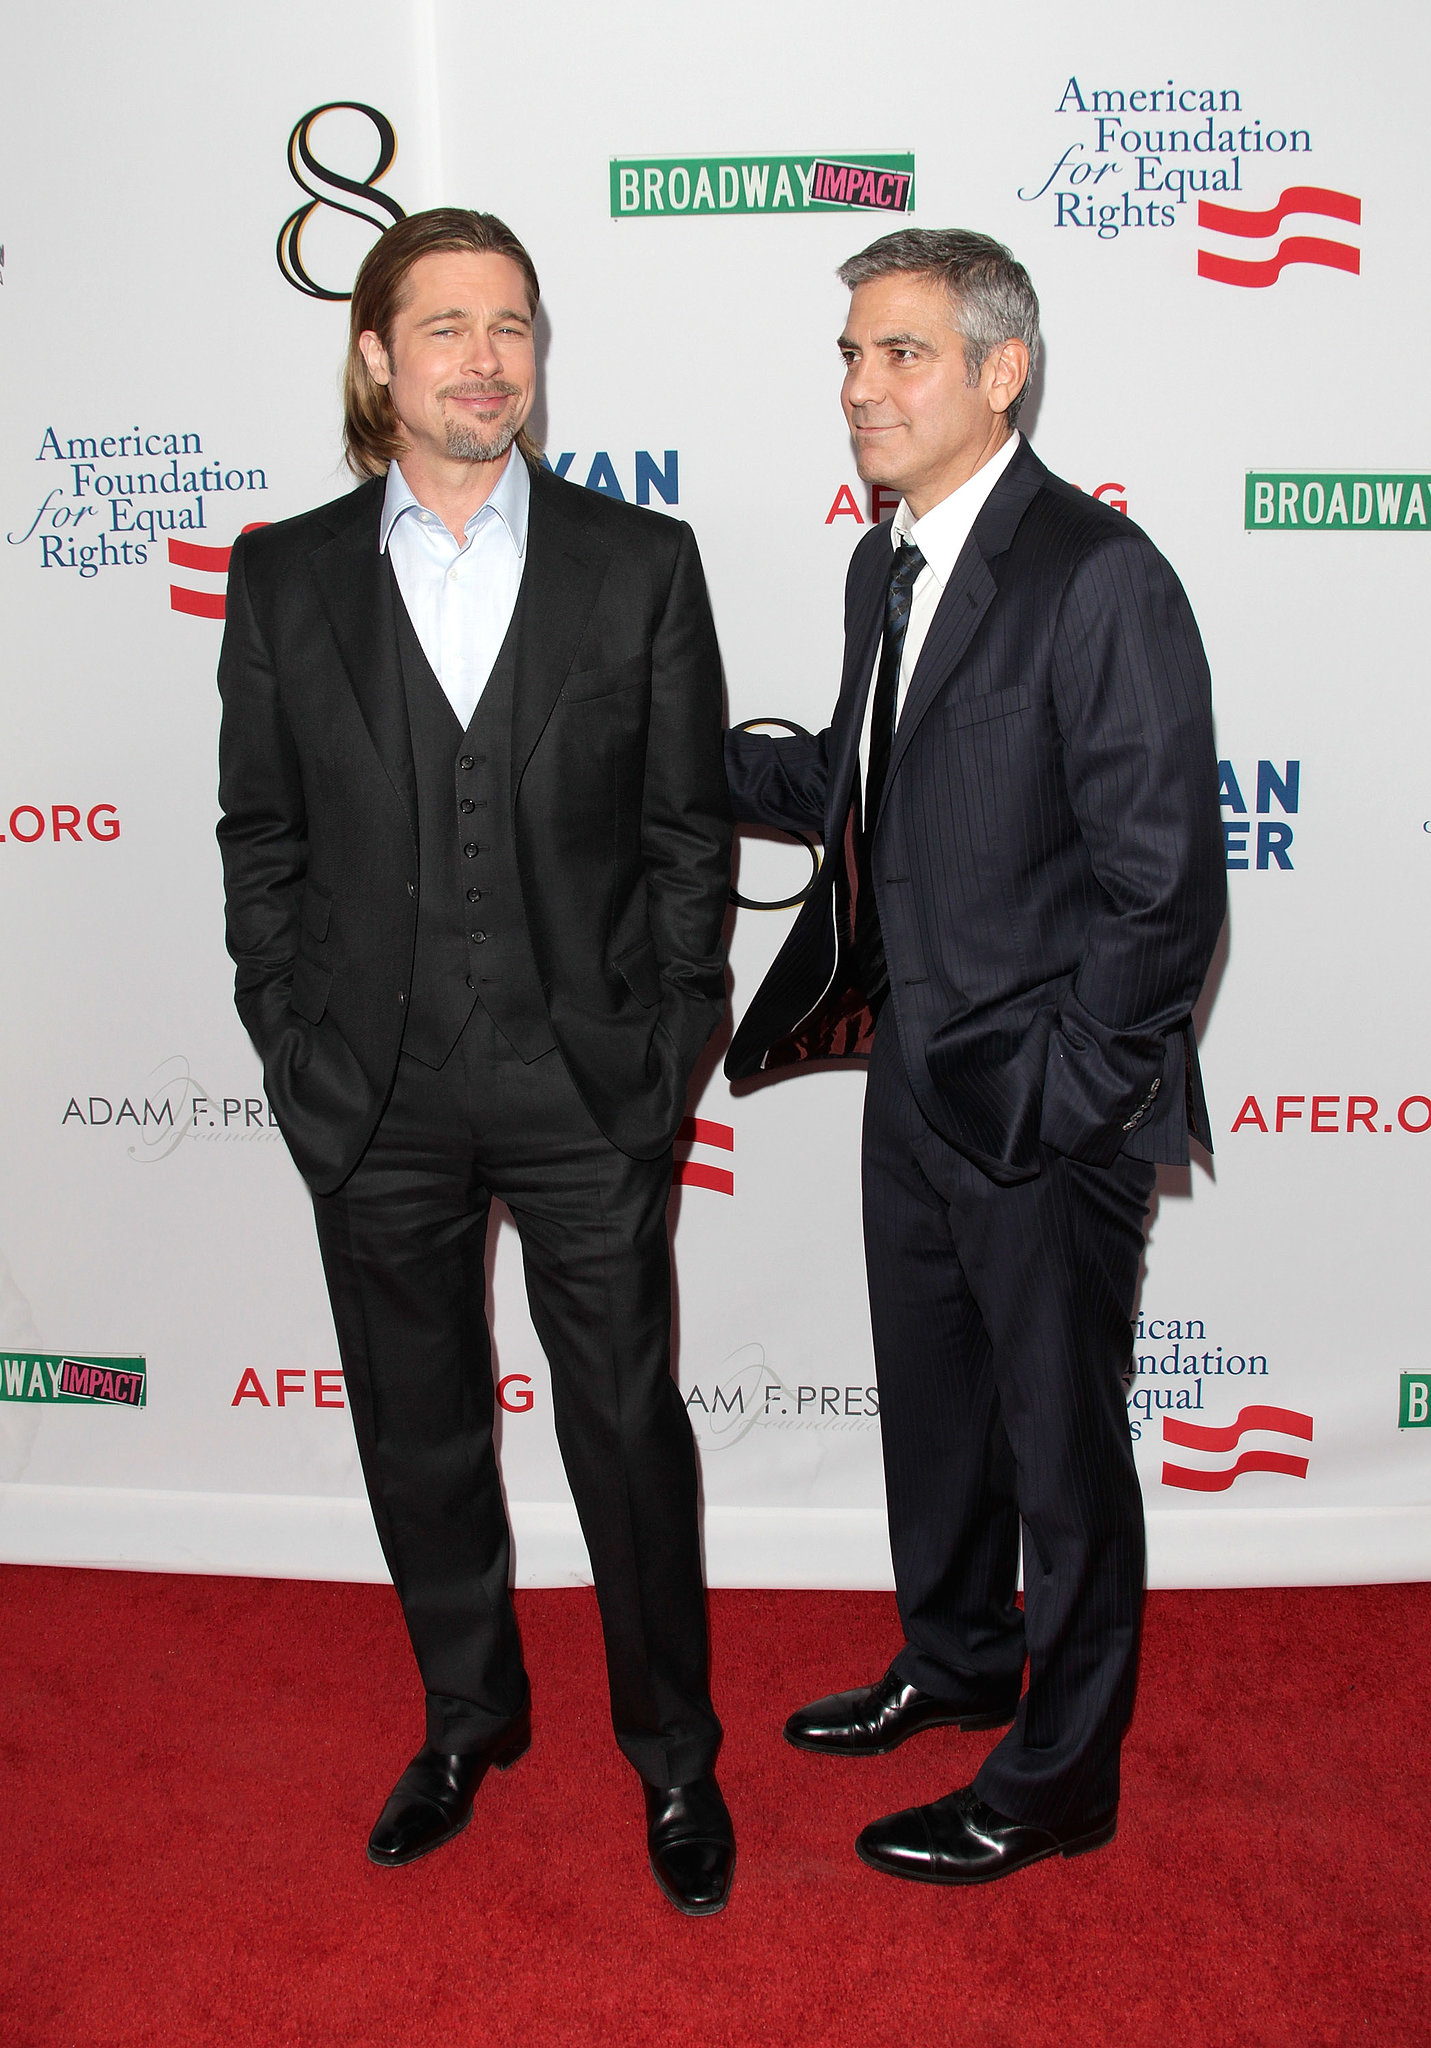 Brad Pitt and George Clooney put their friendship on the big screen in the Ocean's series. The guys